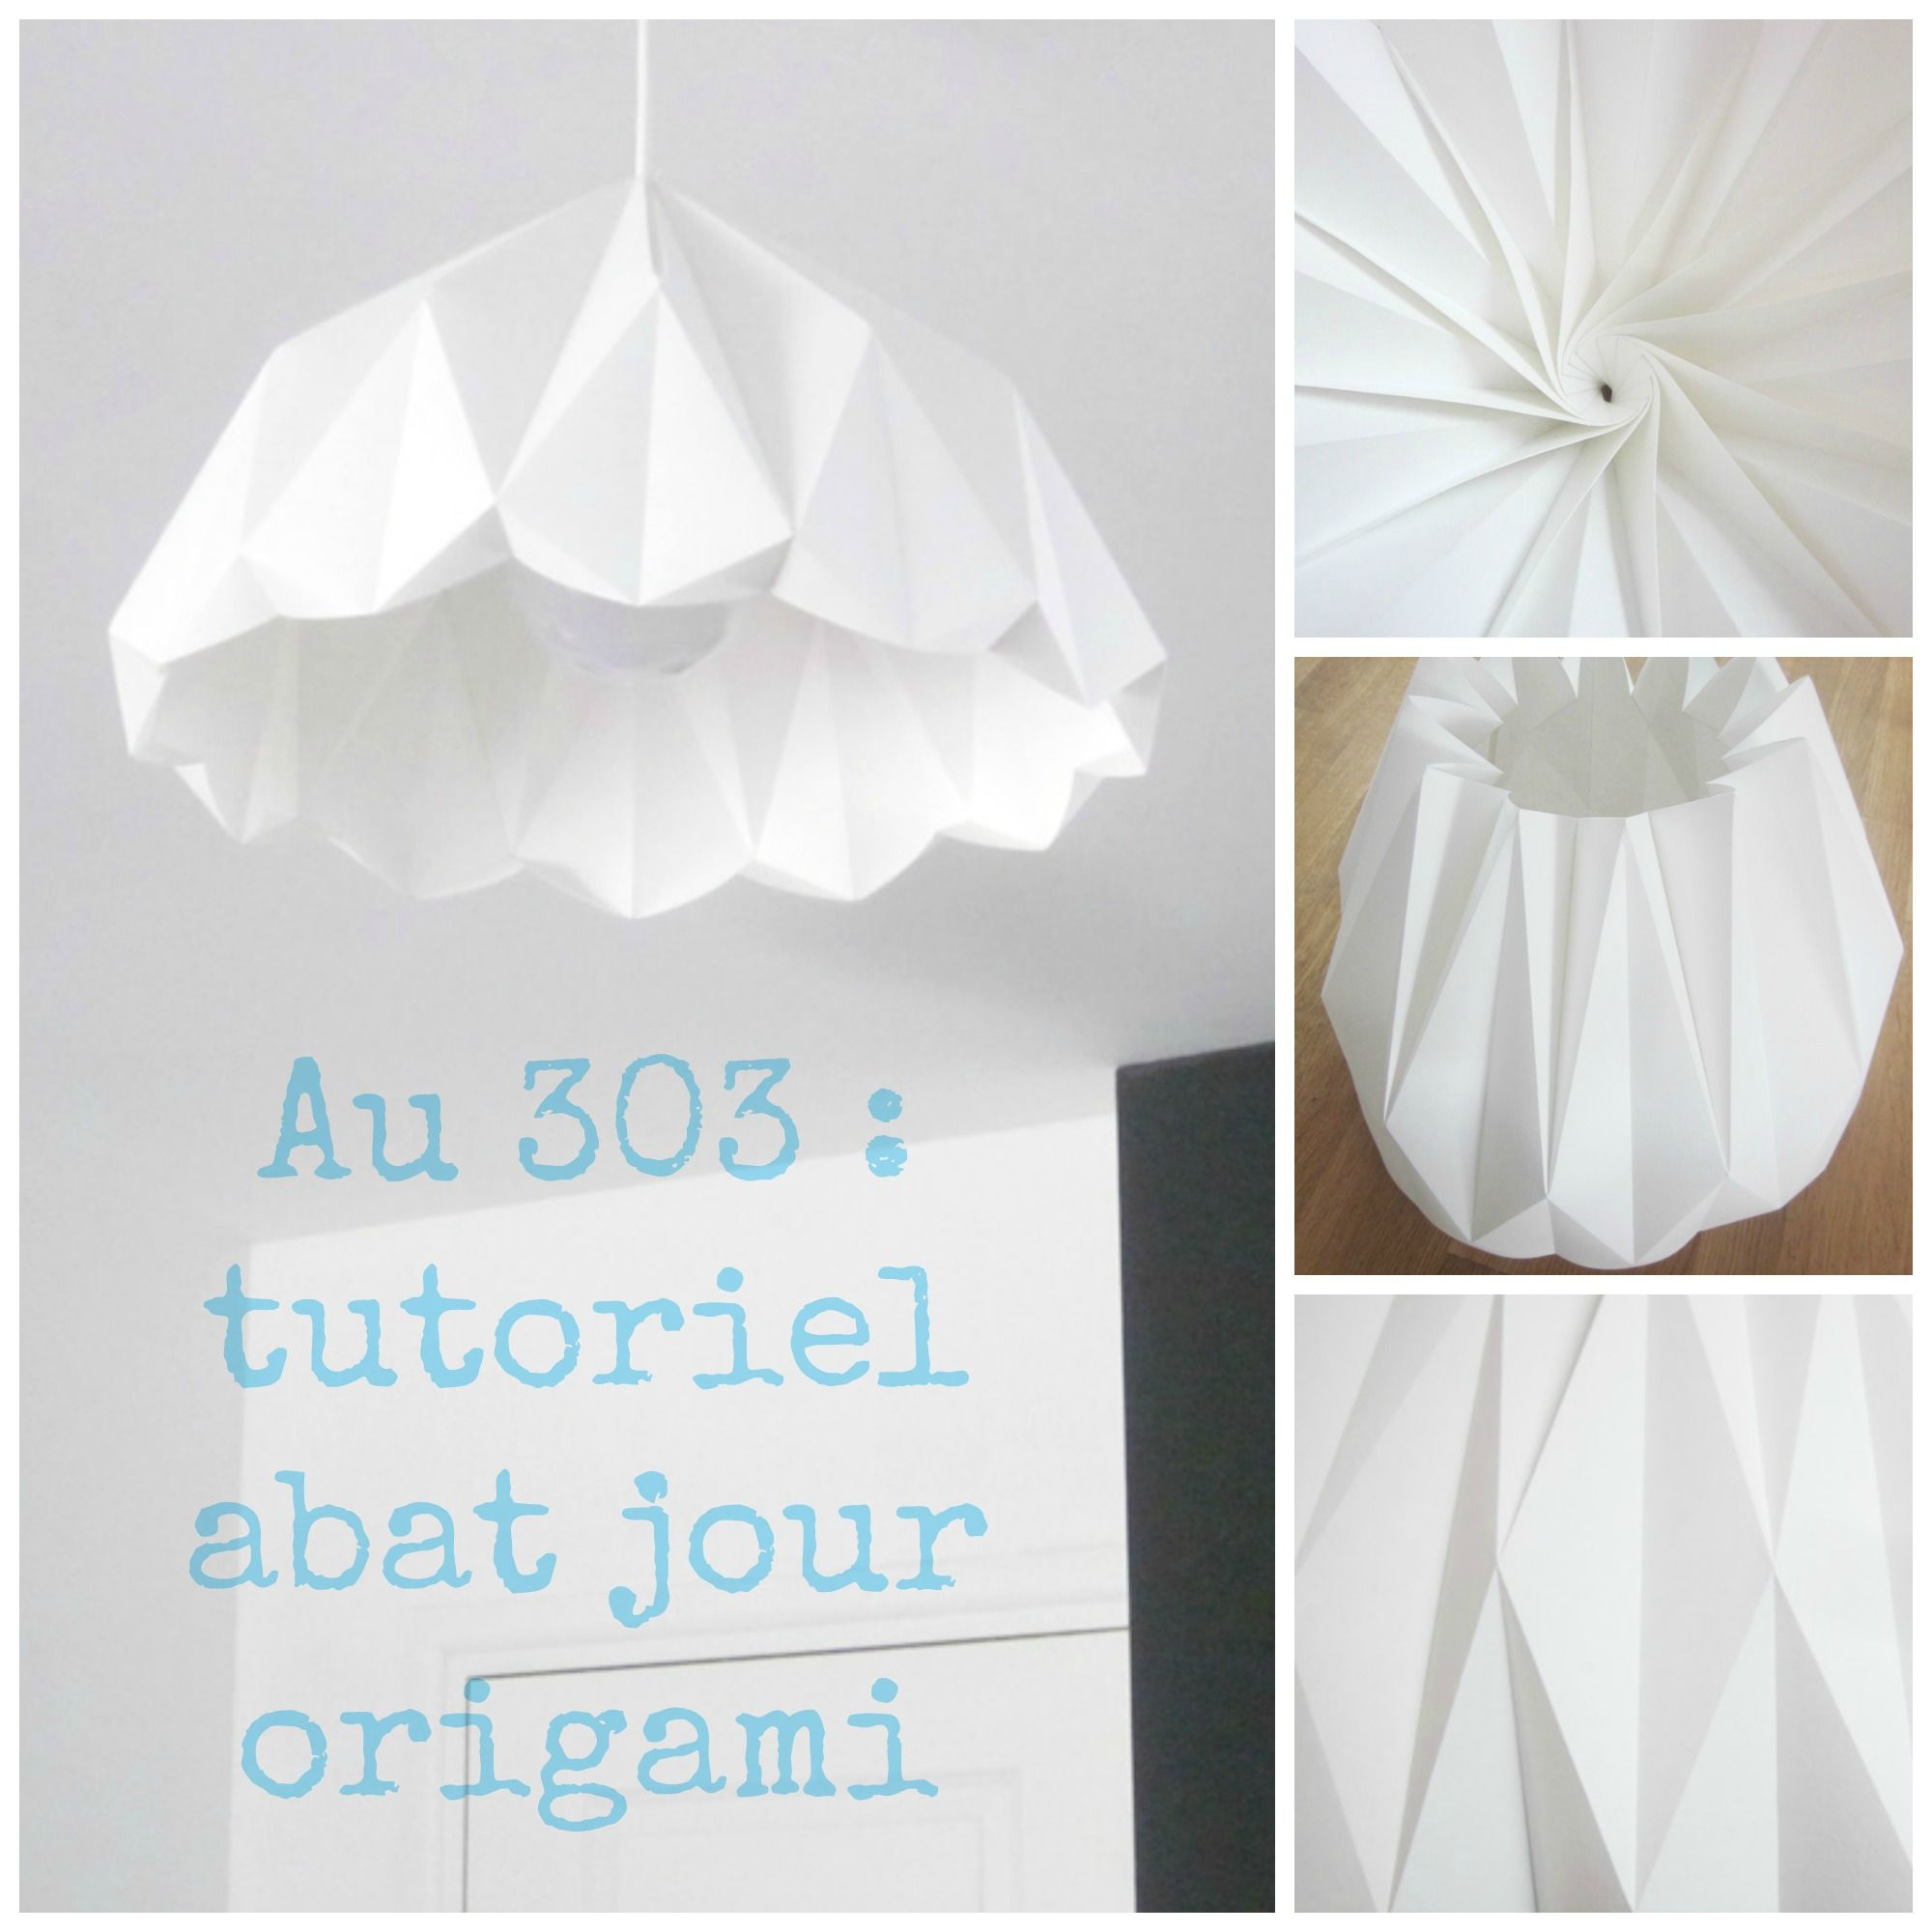 abat jour origami diy cosas pinterest origami craft and origami paper. Black Bedroom Furniture Sets. Home Design Ideas